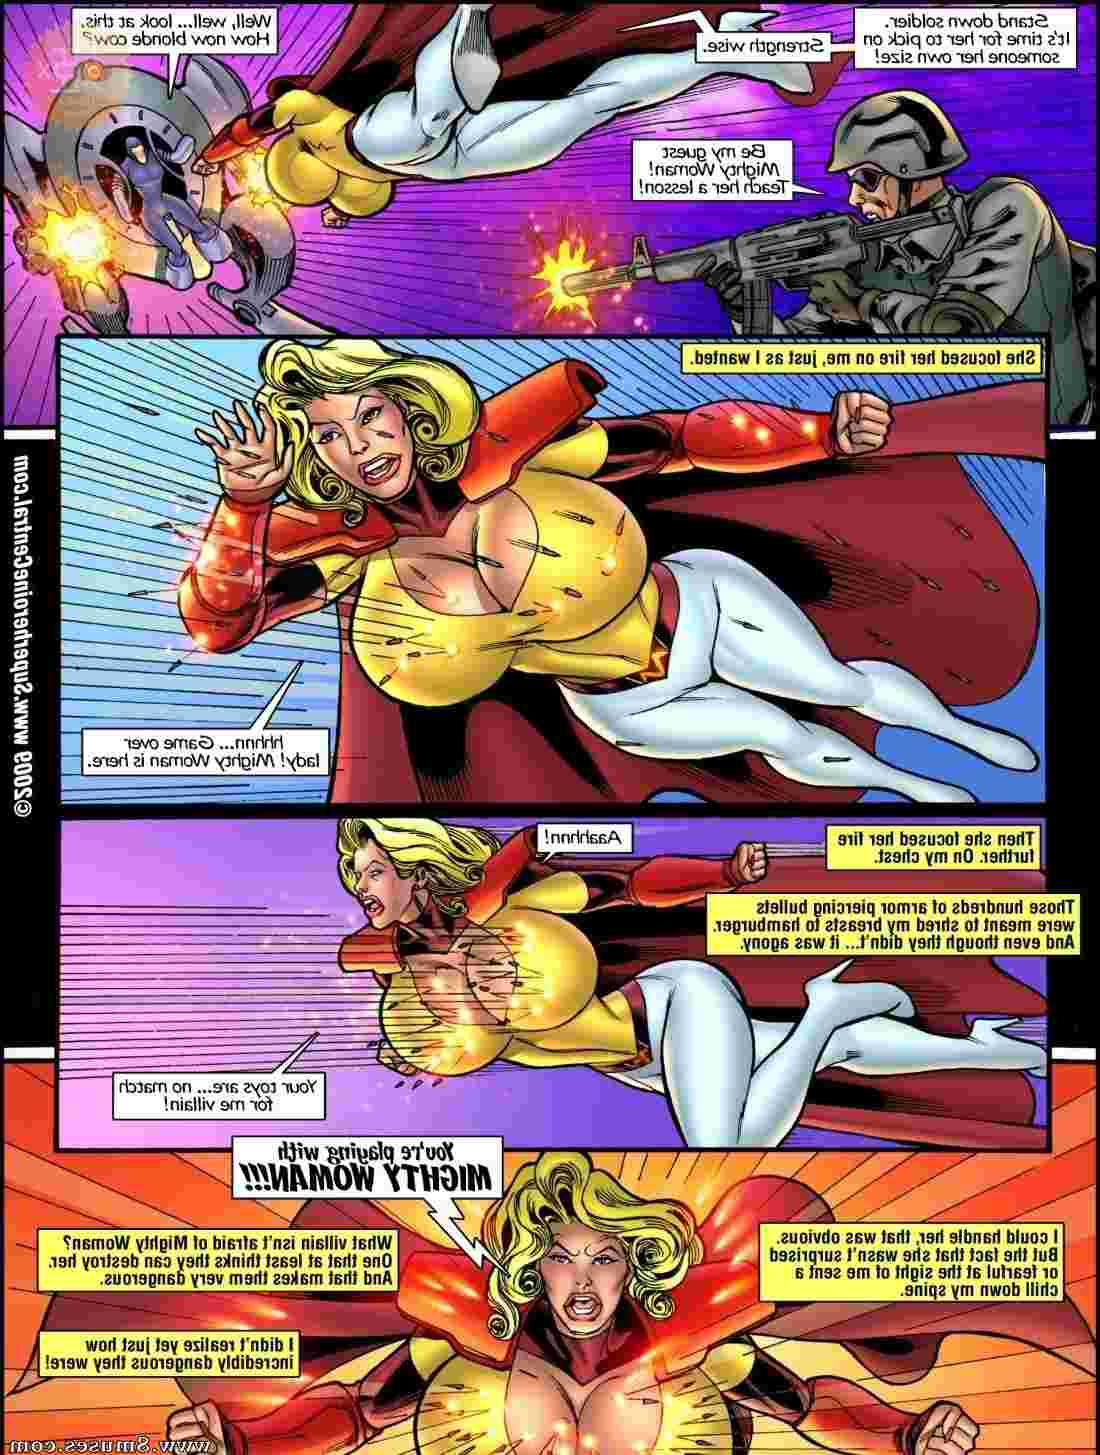 SuperHeroineComixxx/Mighty-cow Mighty_cow__8muses_-_Sex_and_Porn_Comics_8.jpg